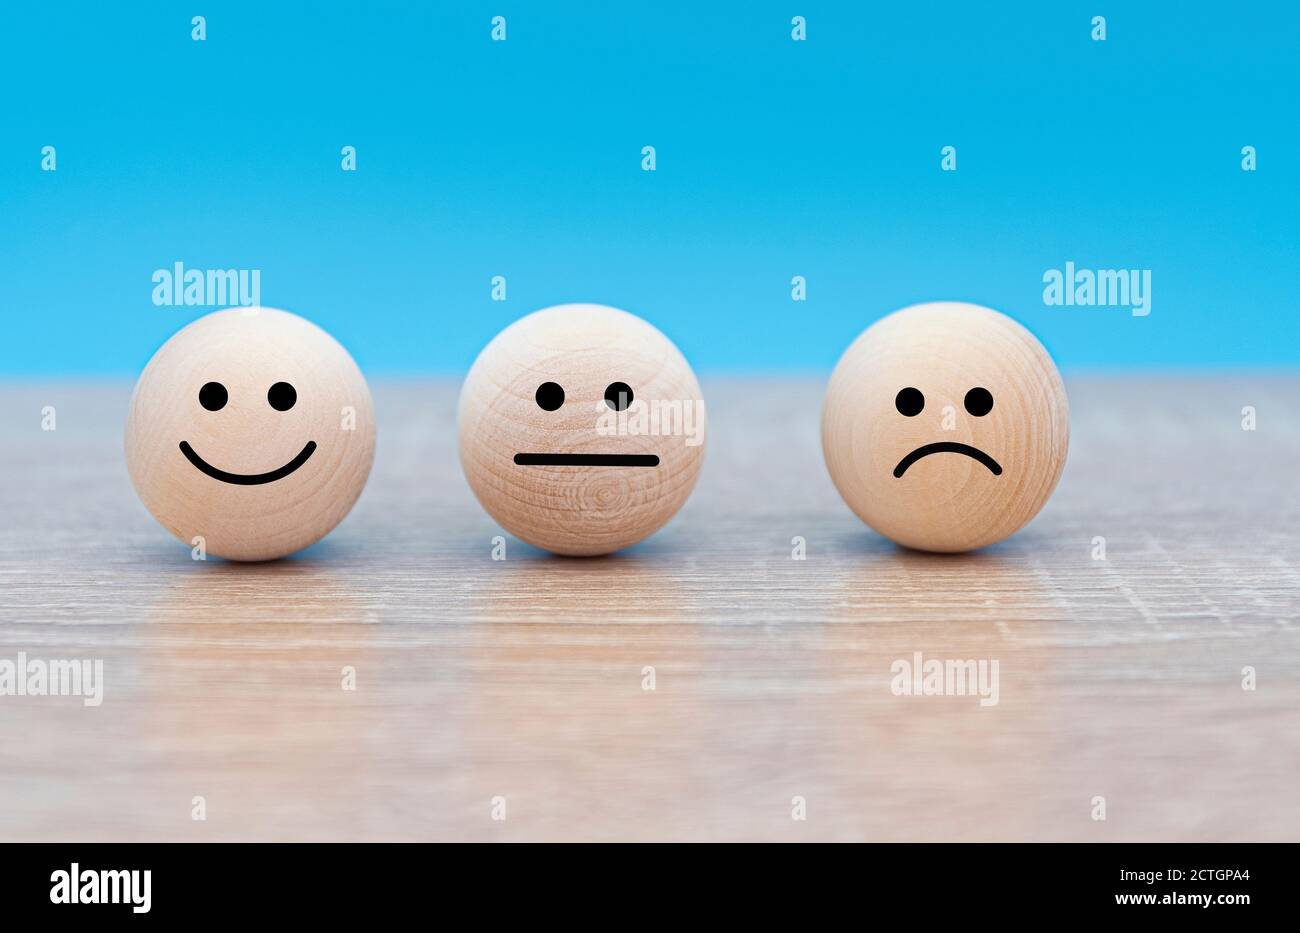 Three wooden faces with emotions: smile - happy, serious - neutral and angry - displeased, concept picture Stock Photo